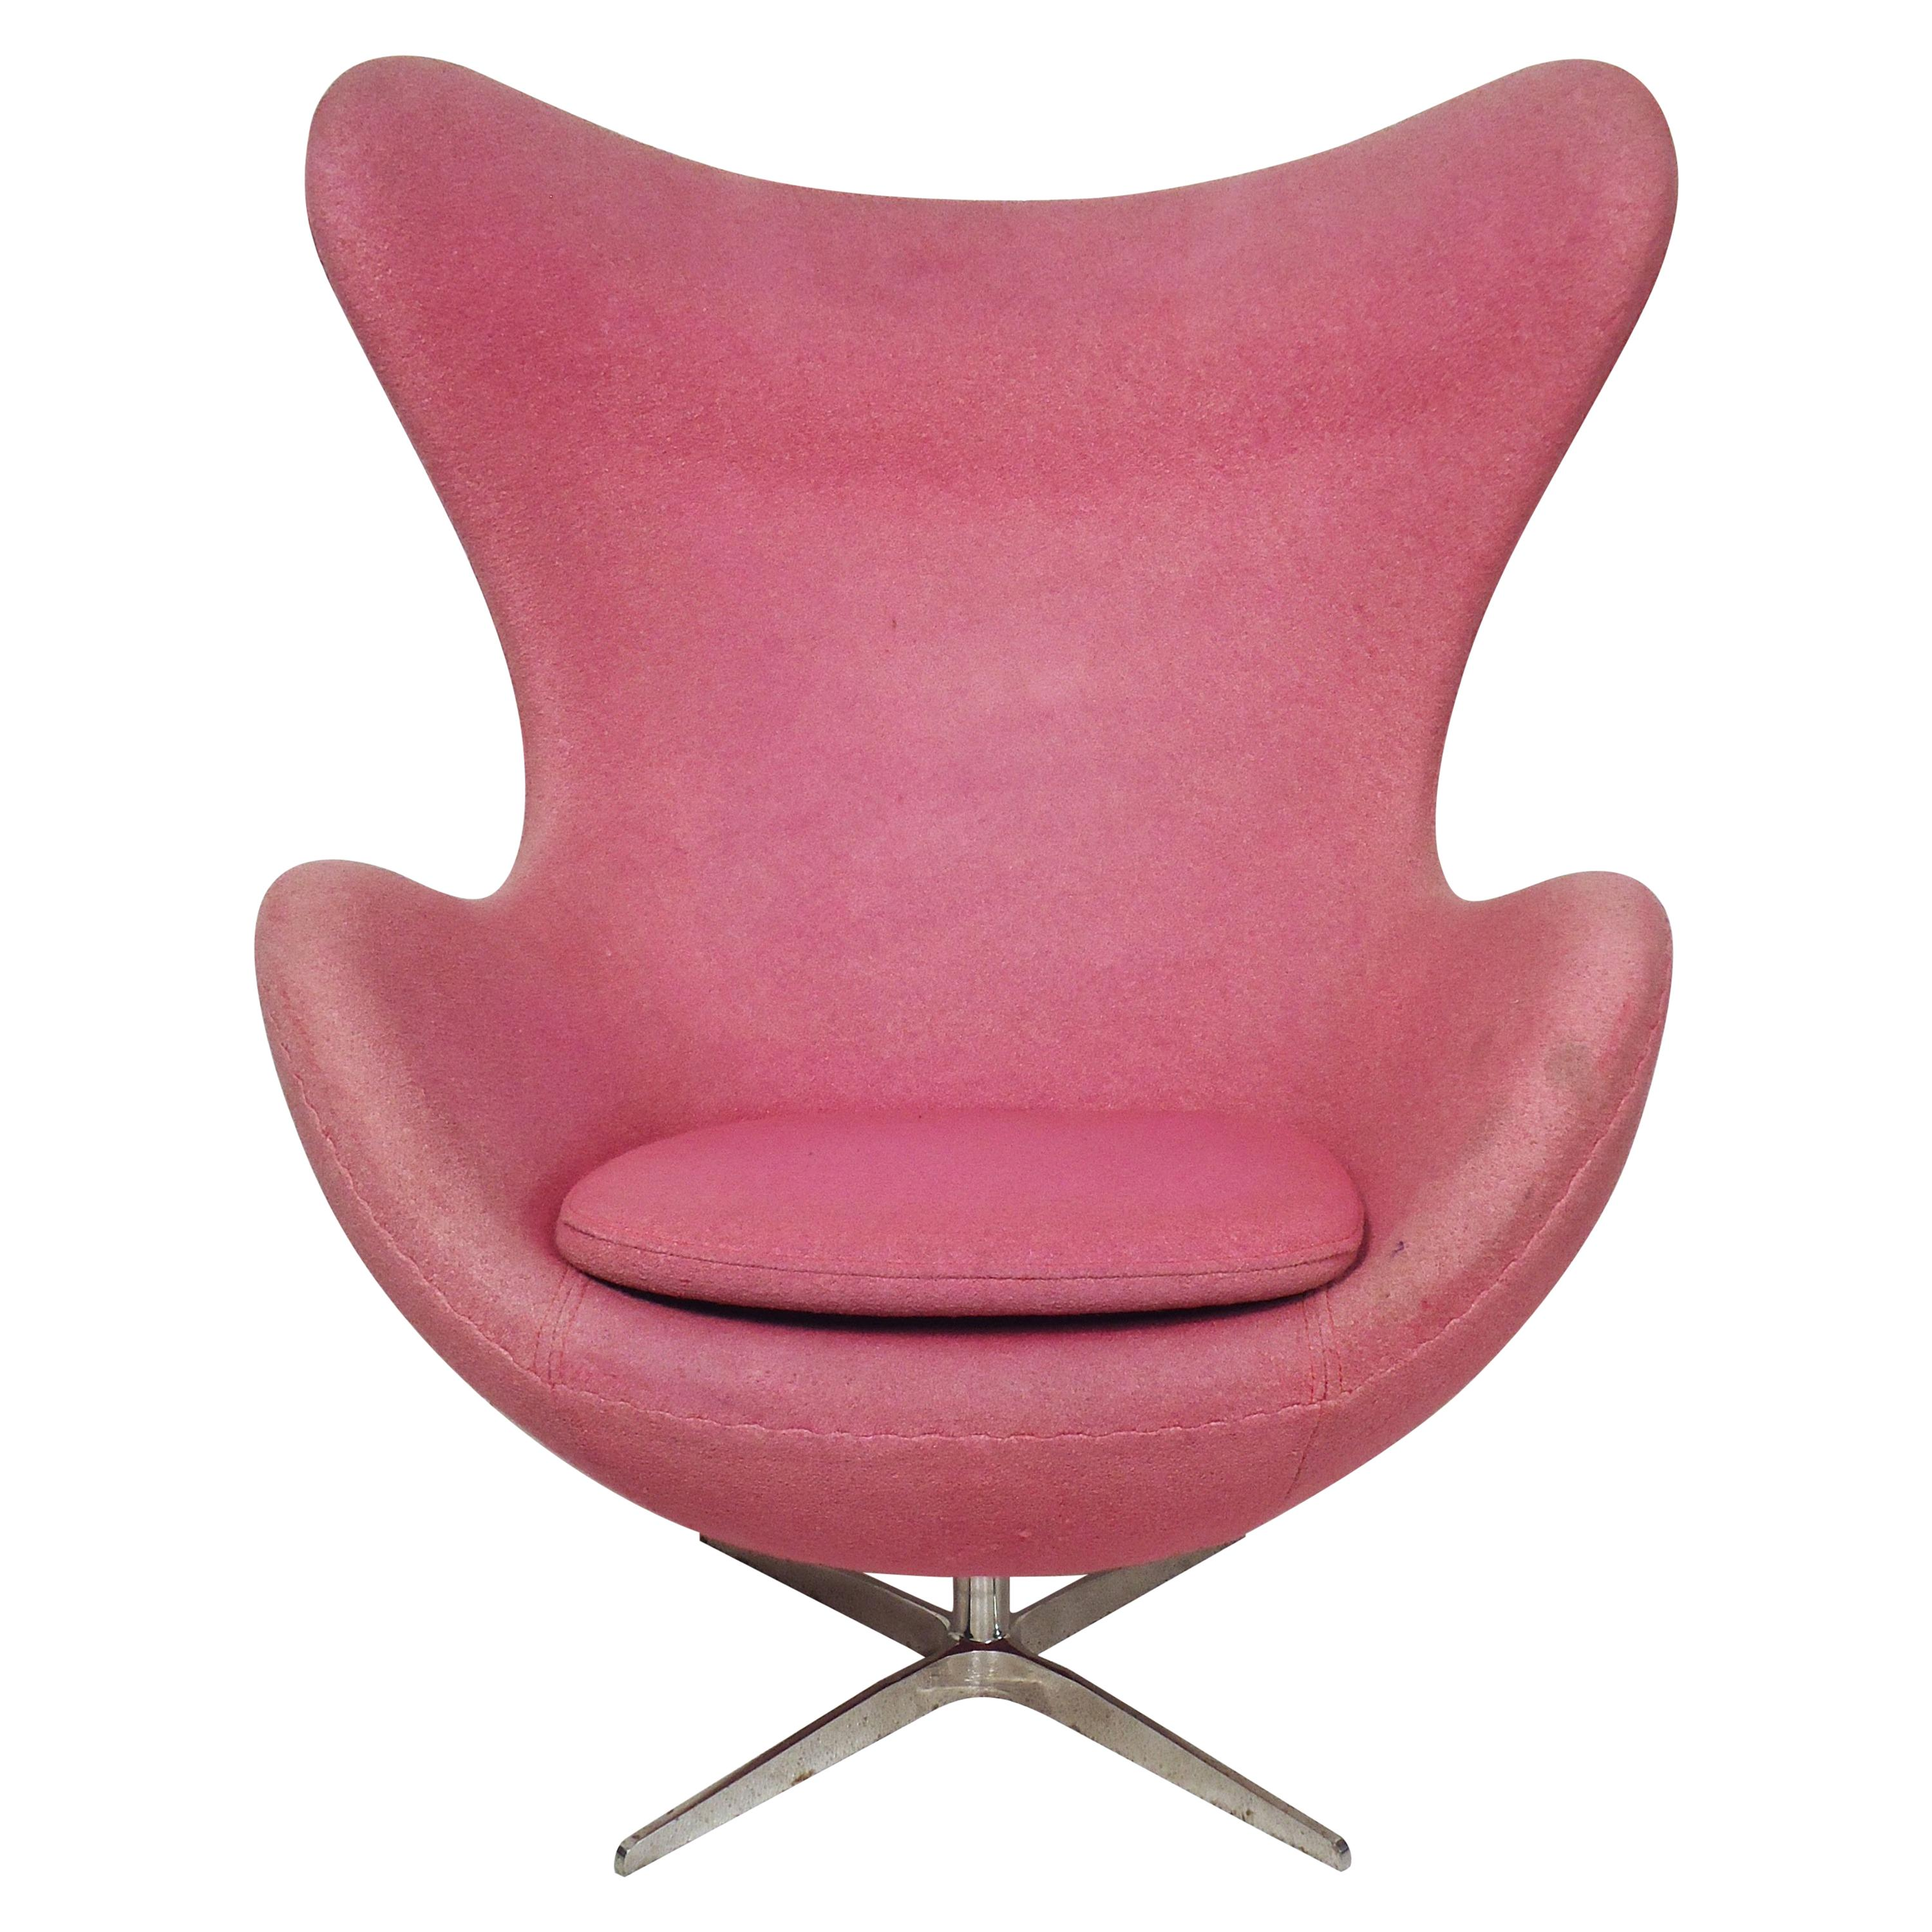 Pink Egg Chair Vintage Modern Egg Chair By Arne Jacobsen